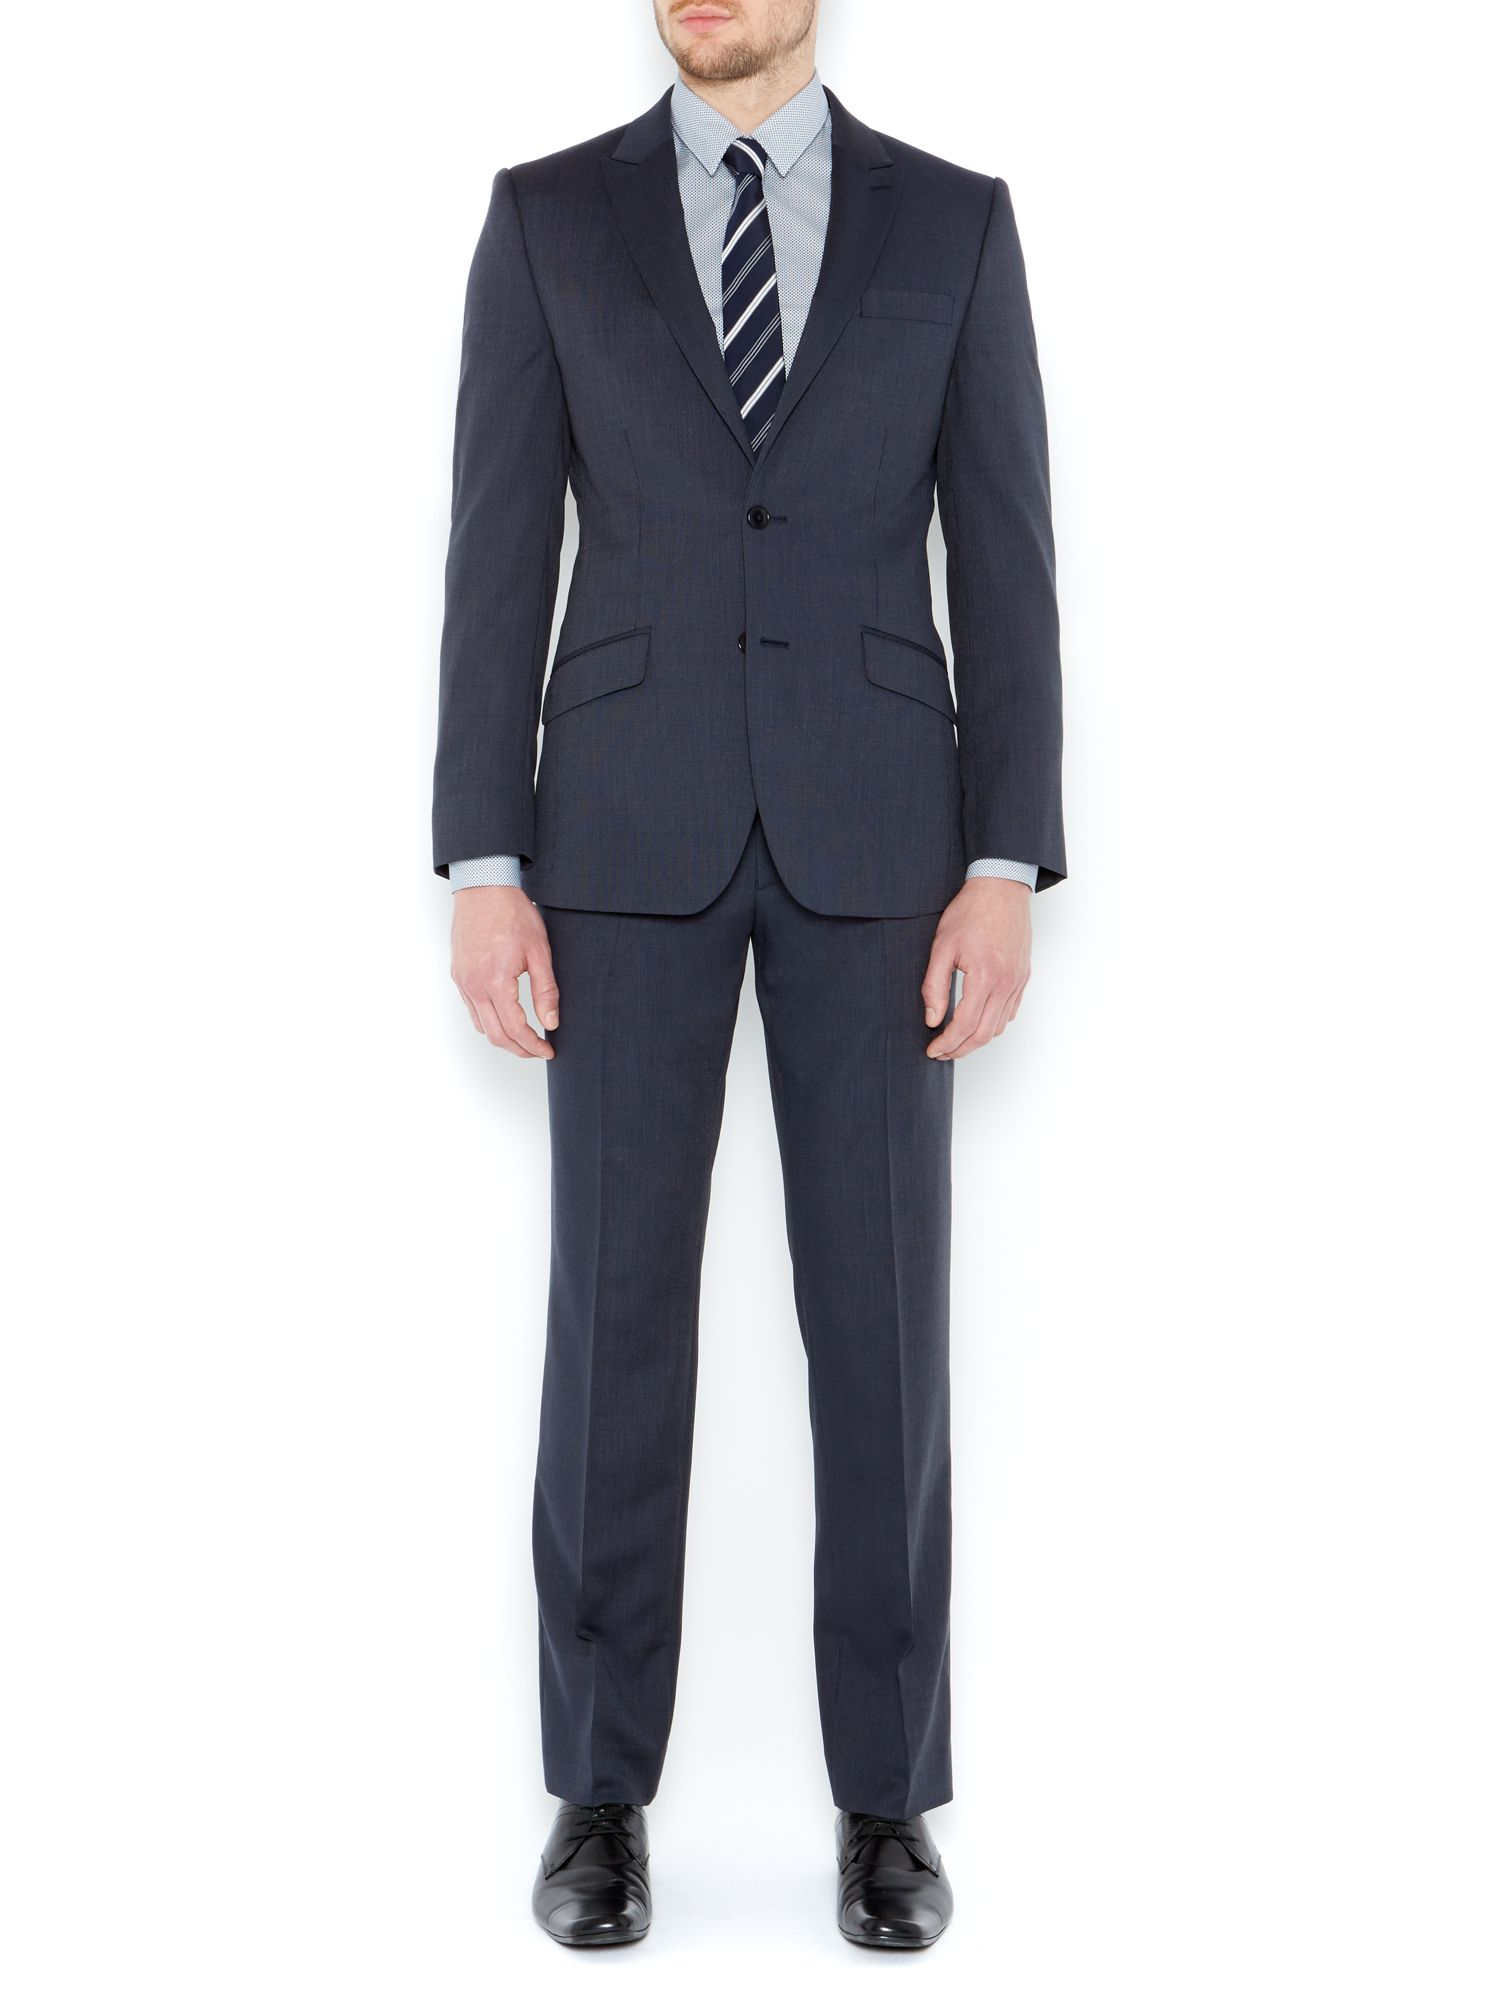 Grove pindot peak suit jacket